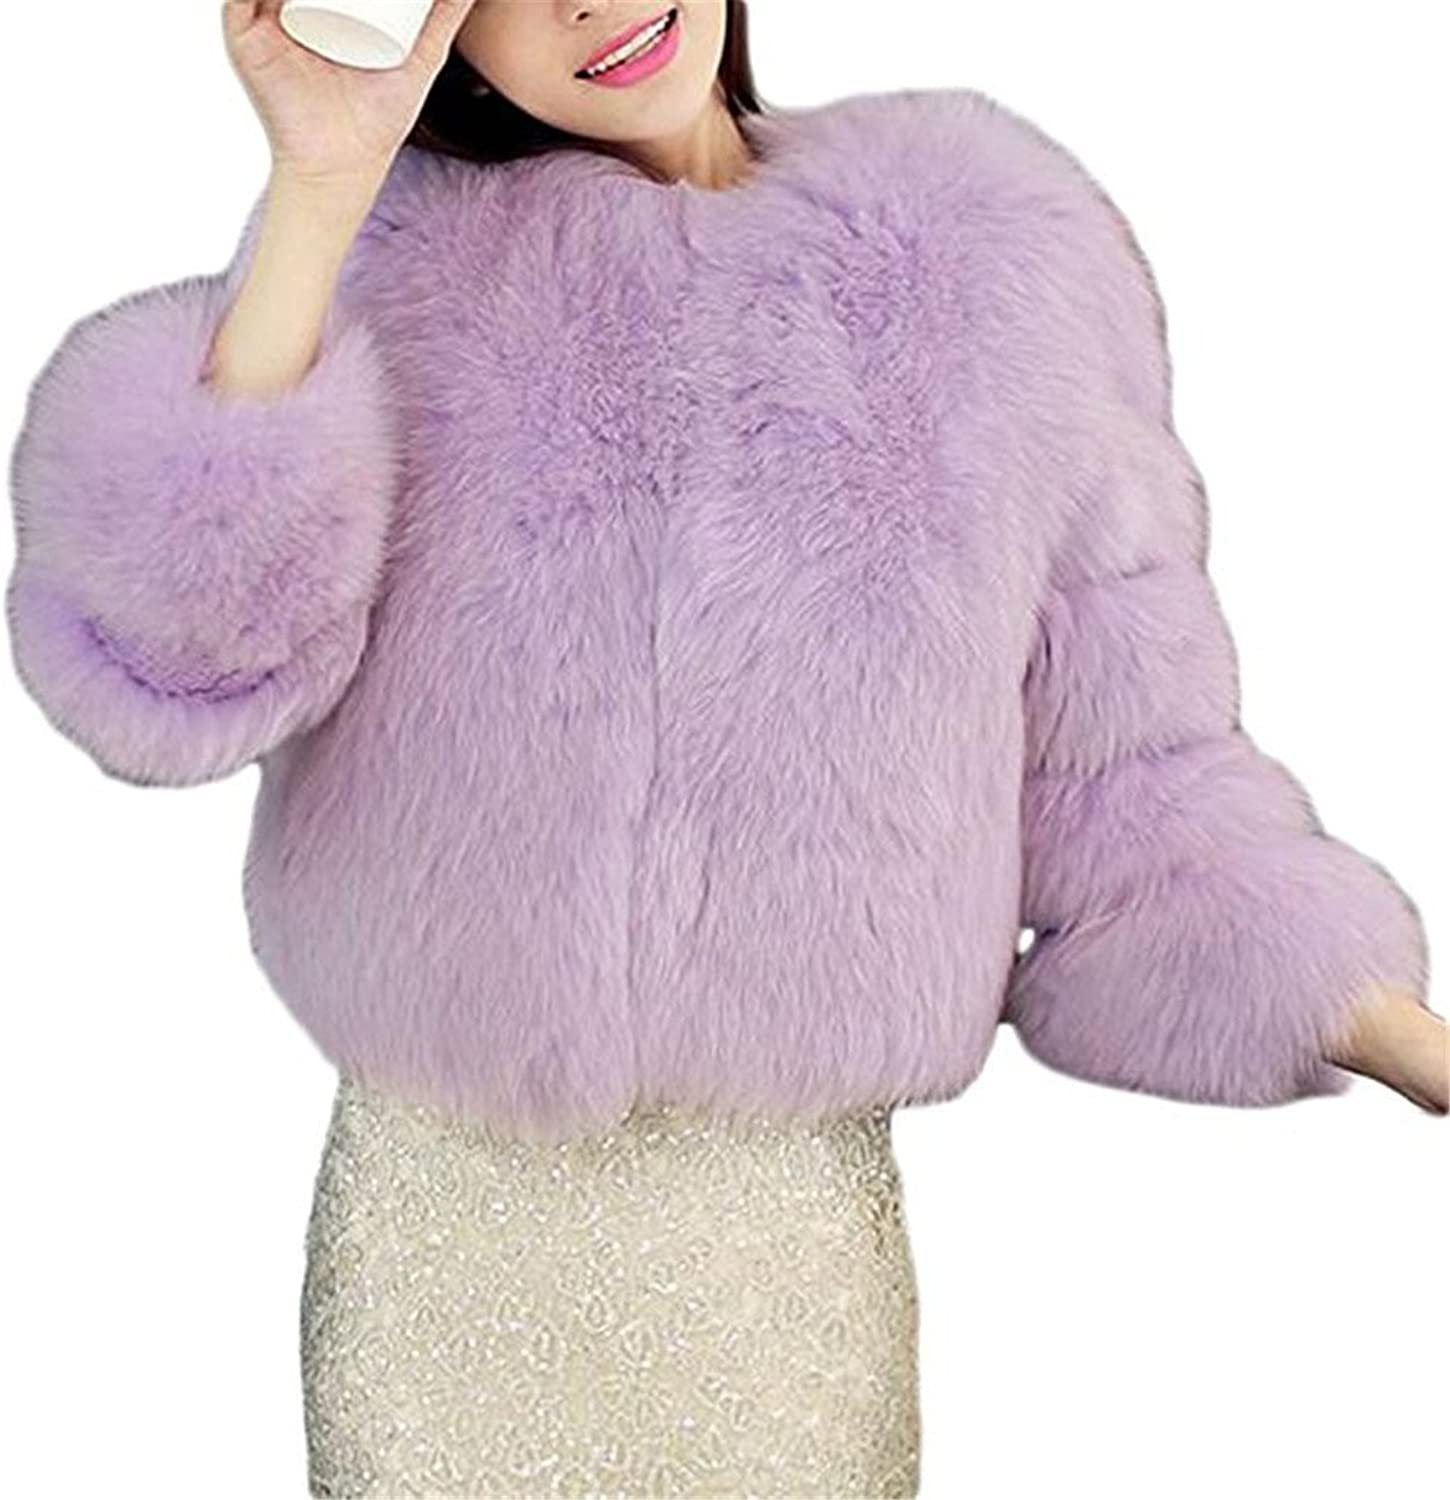 Womens Solid color Thick Luxury Winter Fox Faux Fur Short Coat Jacket